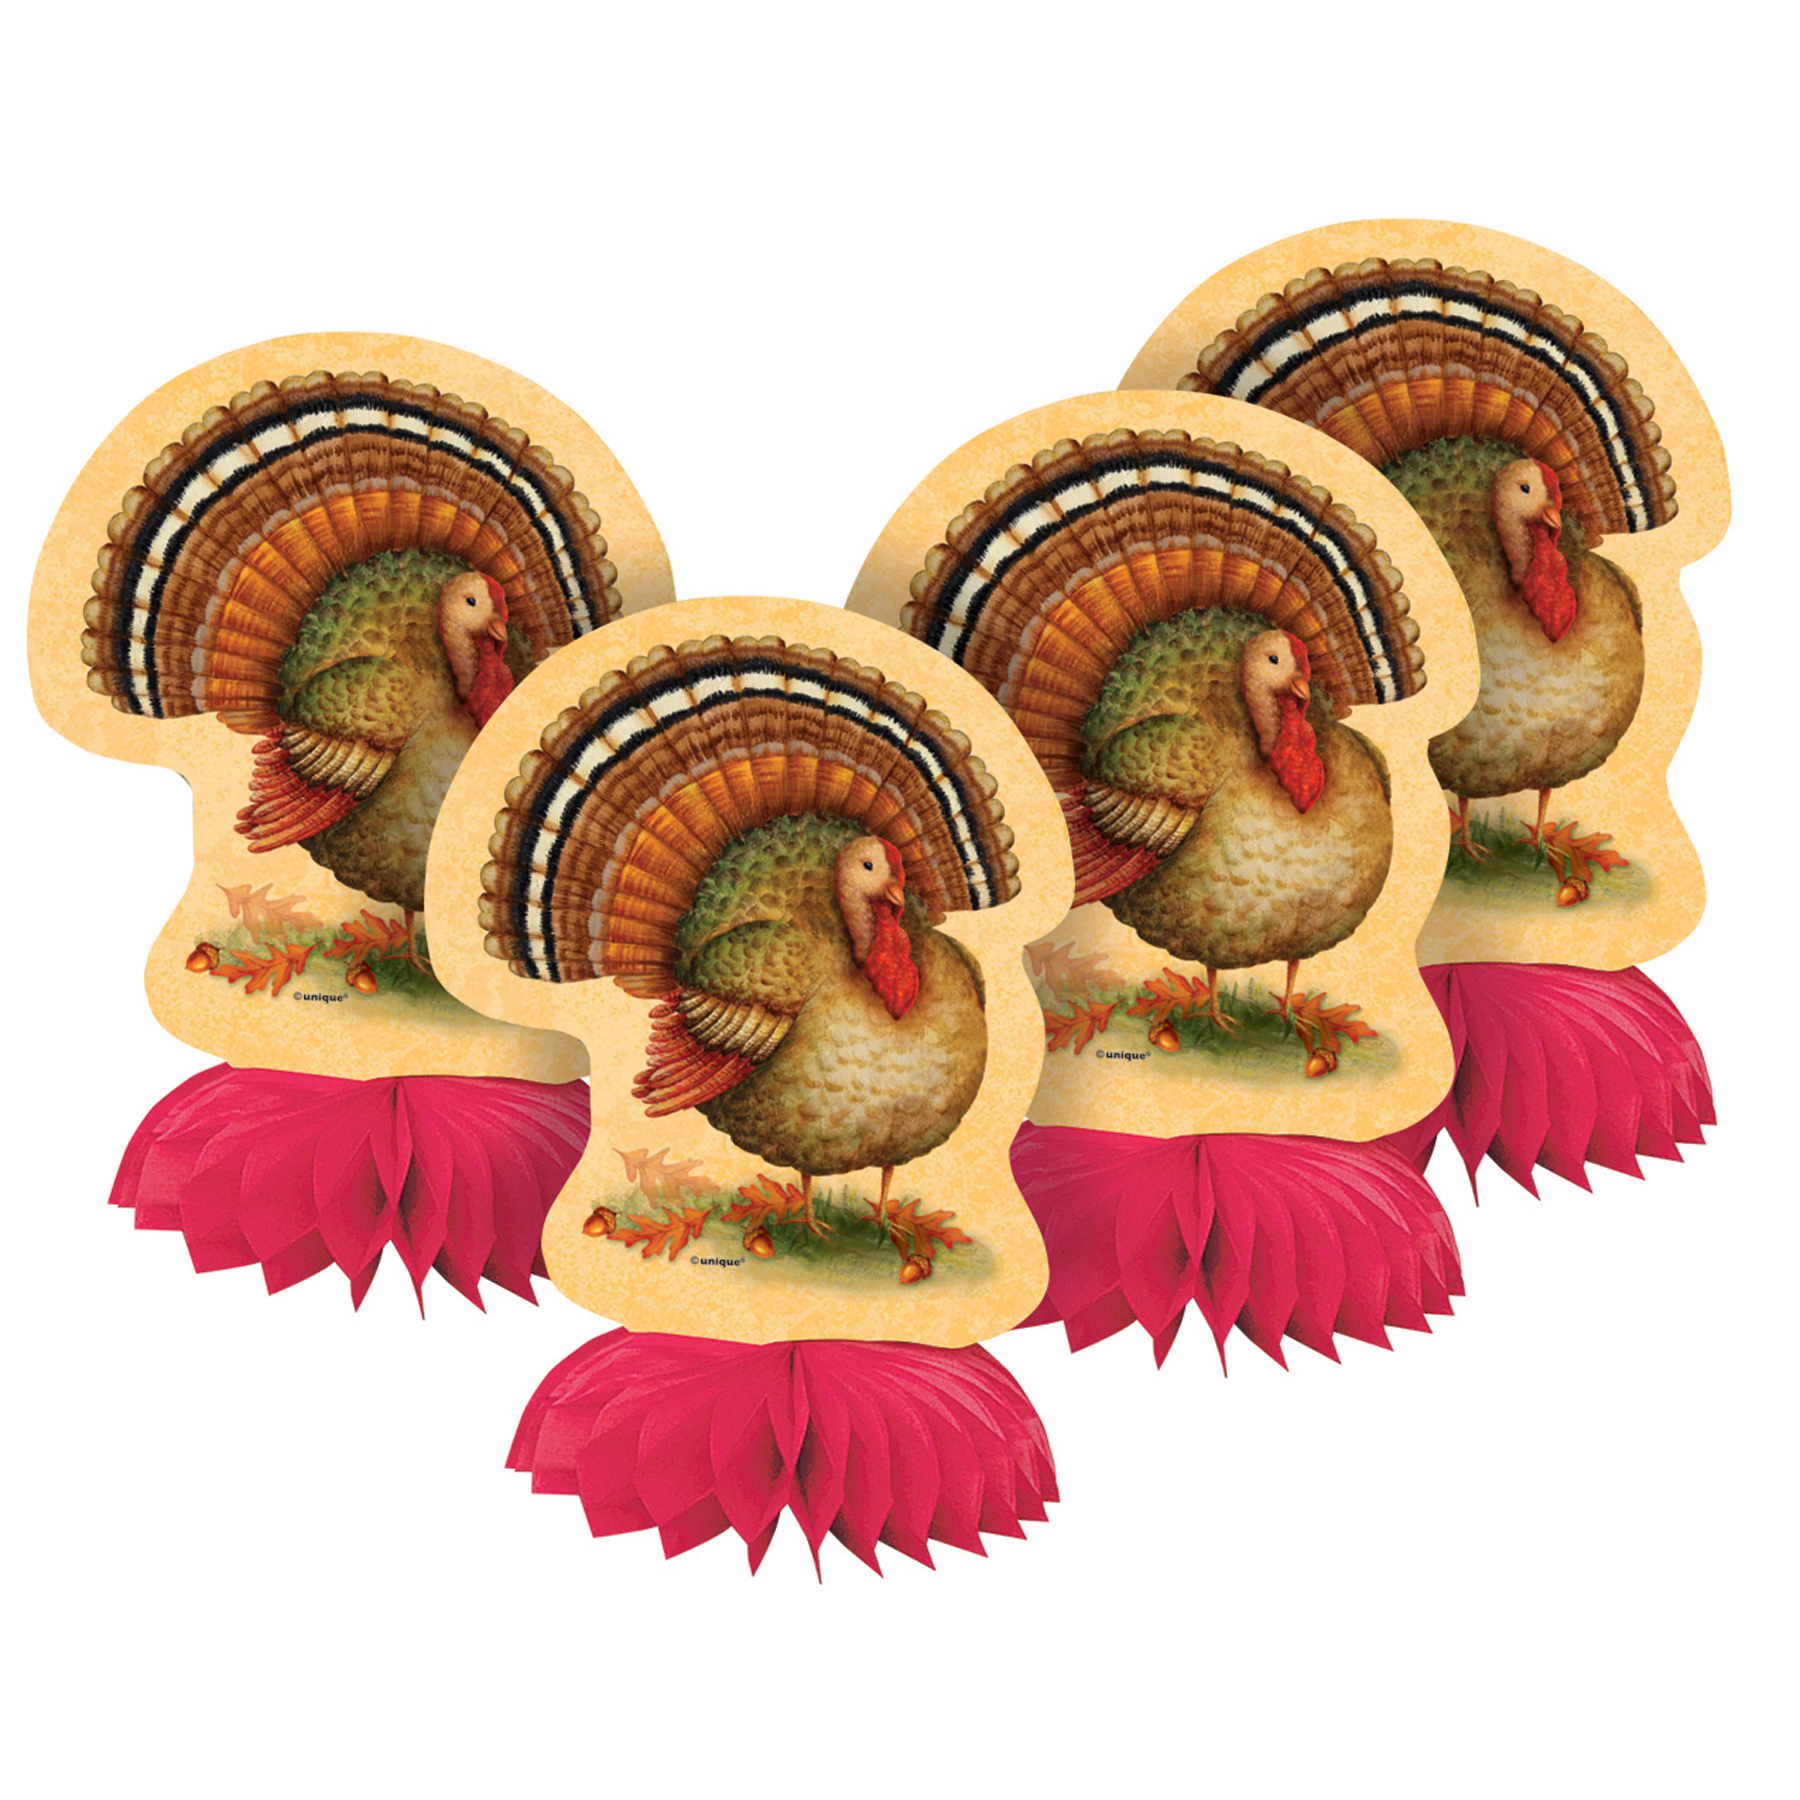 (3 pack) Festive Turkey Thanksgiving Centerpiece Decorations, 6 in, 12ct total